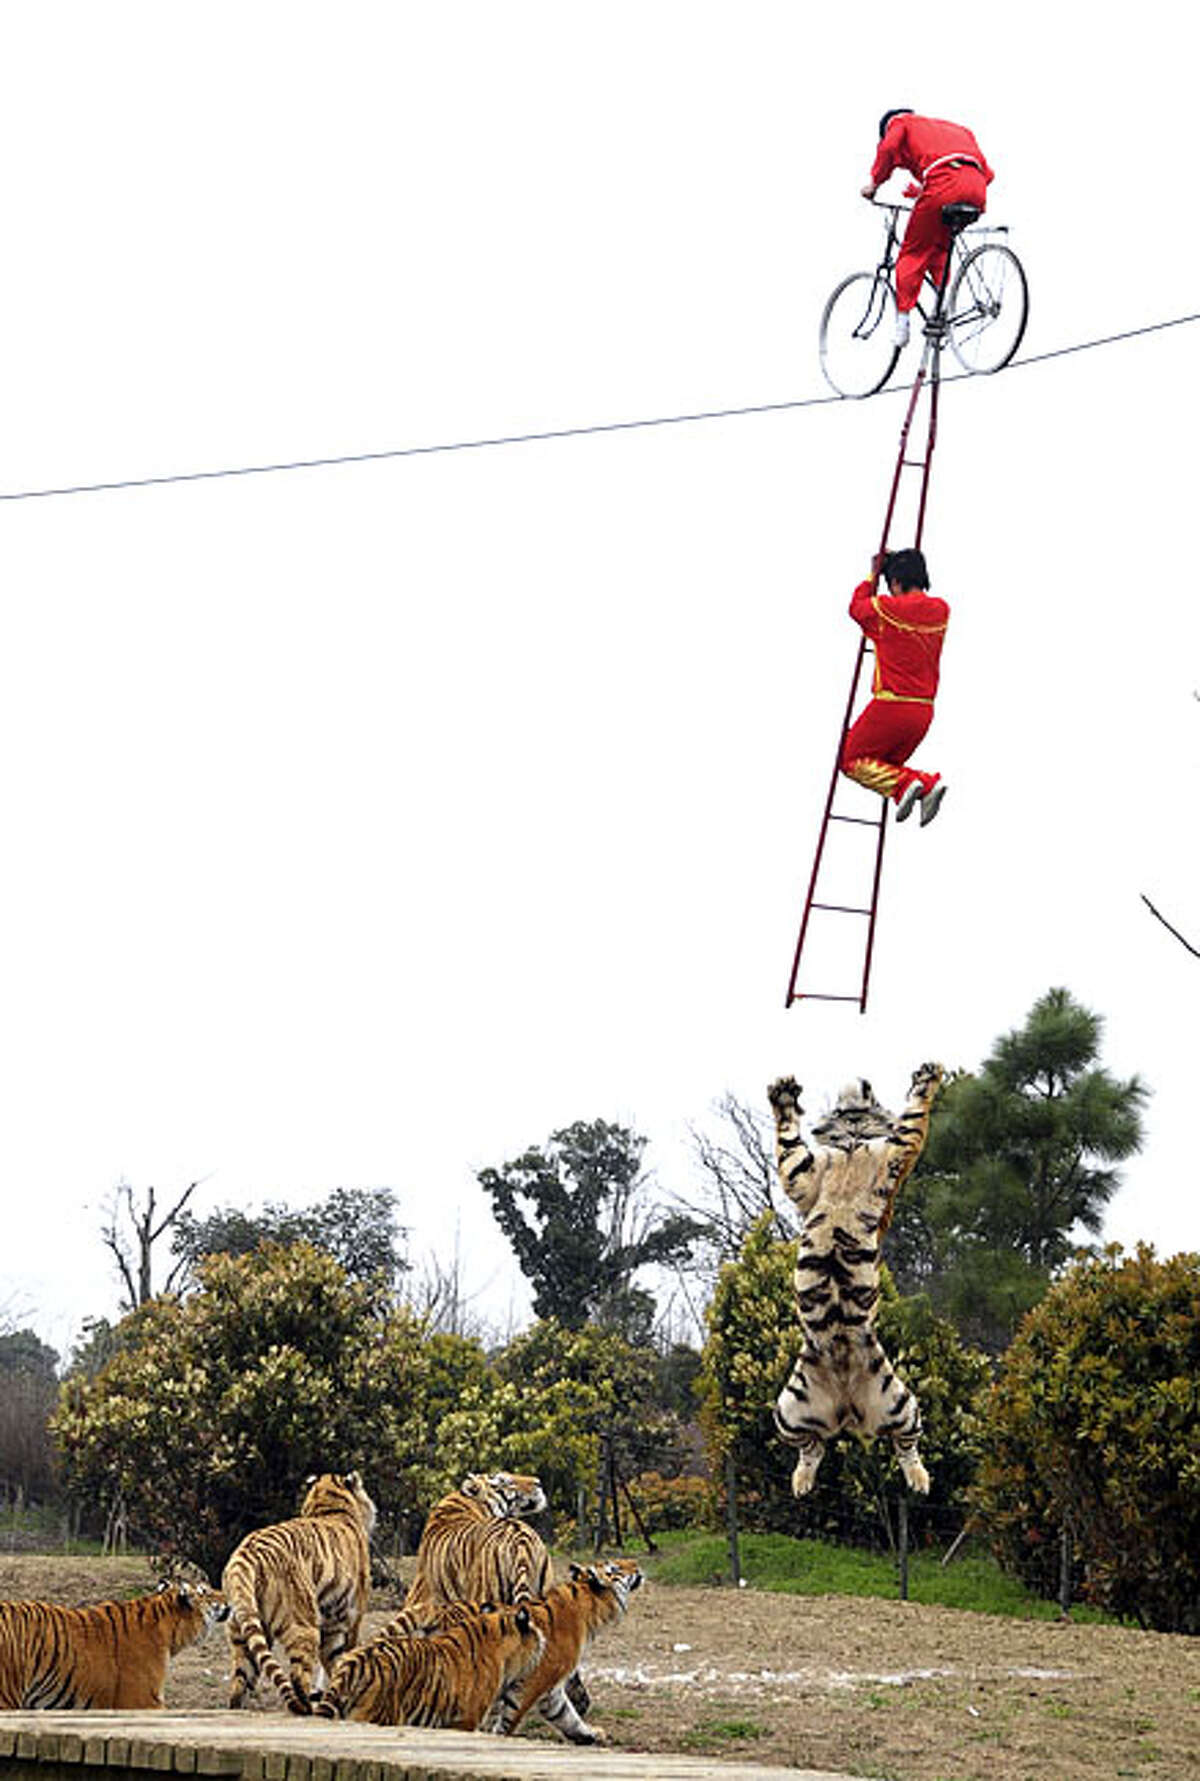 In this Tuesday, March 30, 2010 photo, a tiger jumps to catch a Chinese circus performer, clinging on to a ladder above the tiger den at a zoo in Changzhou in east China's Jiangsu province. Authorities canceled the performance amid wide criticism after media exposure, newspapers reported.